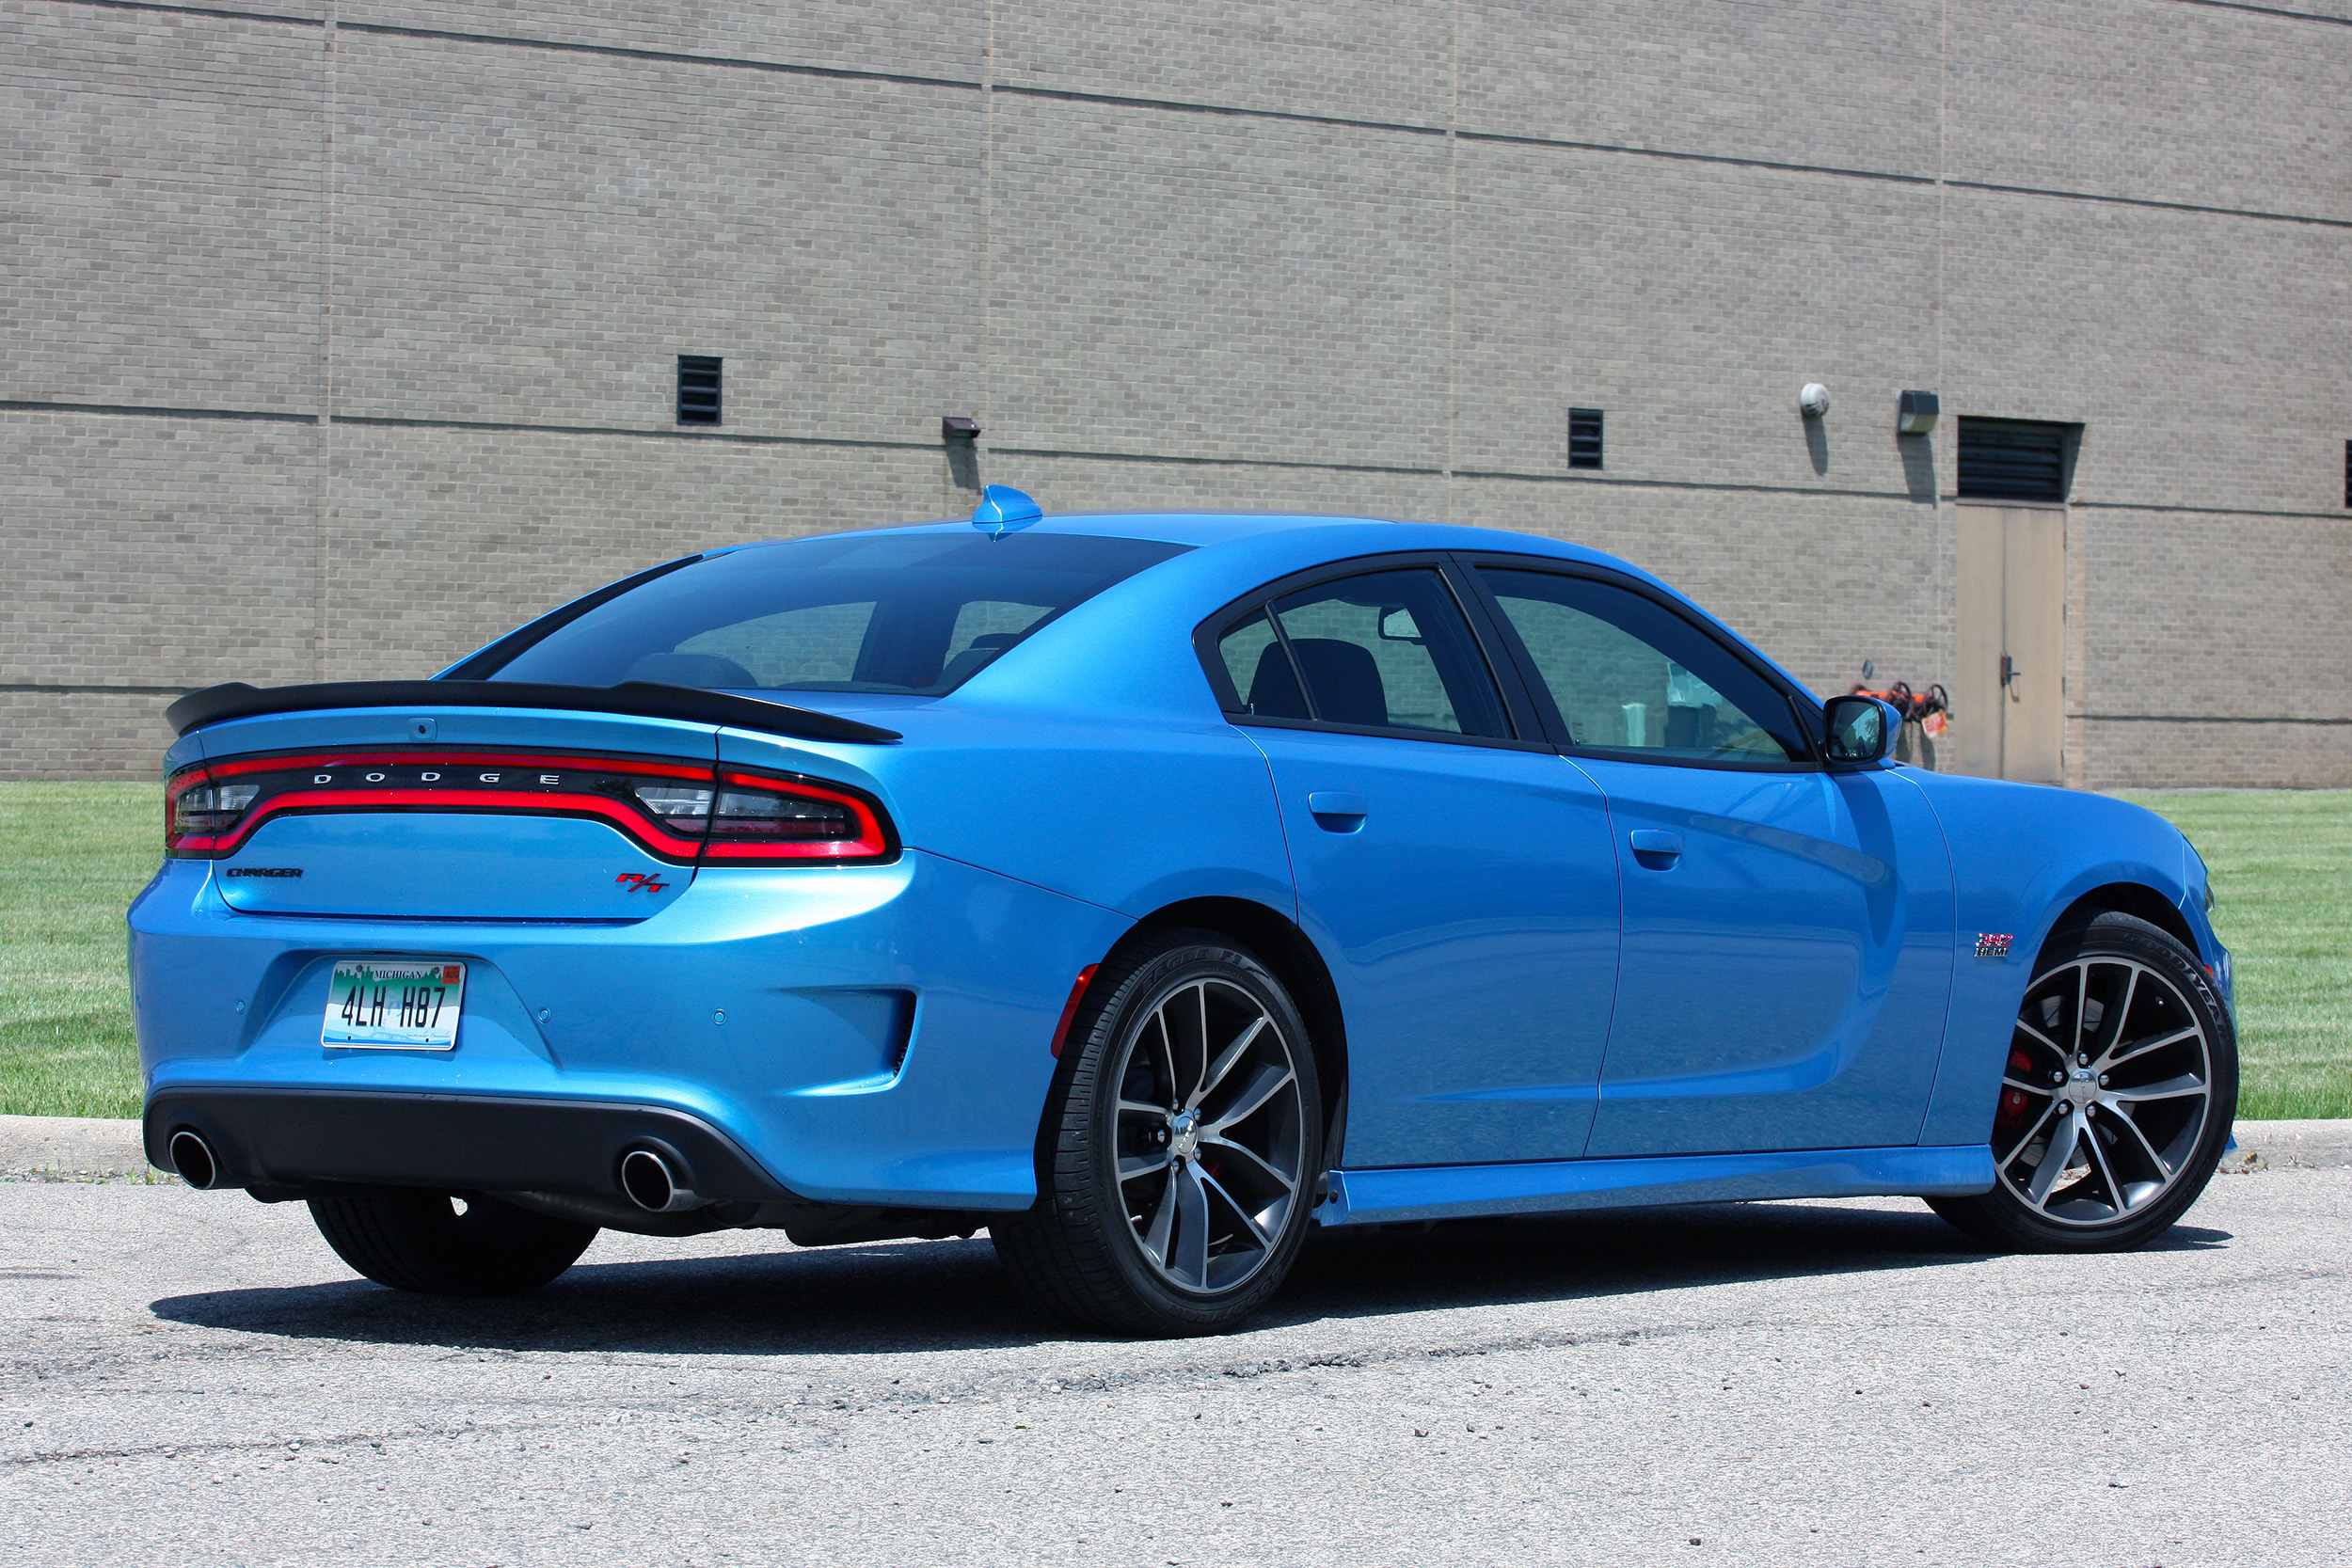 2015 Dodge Charger Scat Pack For Sale >> 2015 Dodge Charger R/T Scat Pack Quick Spin   Autoblog